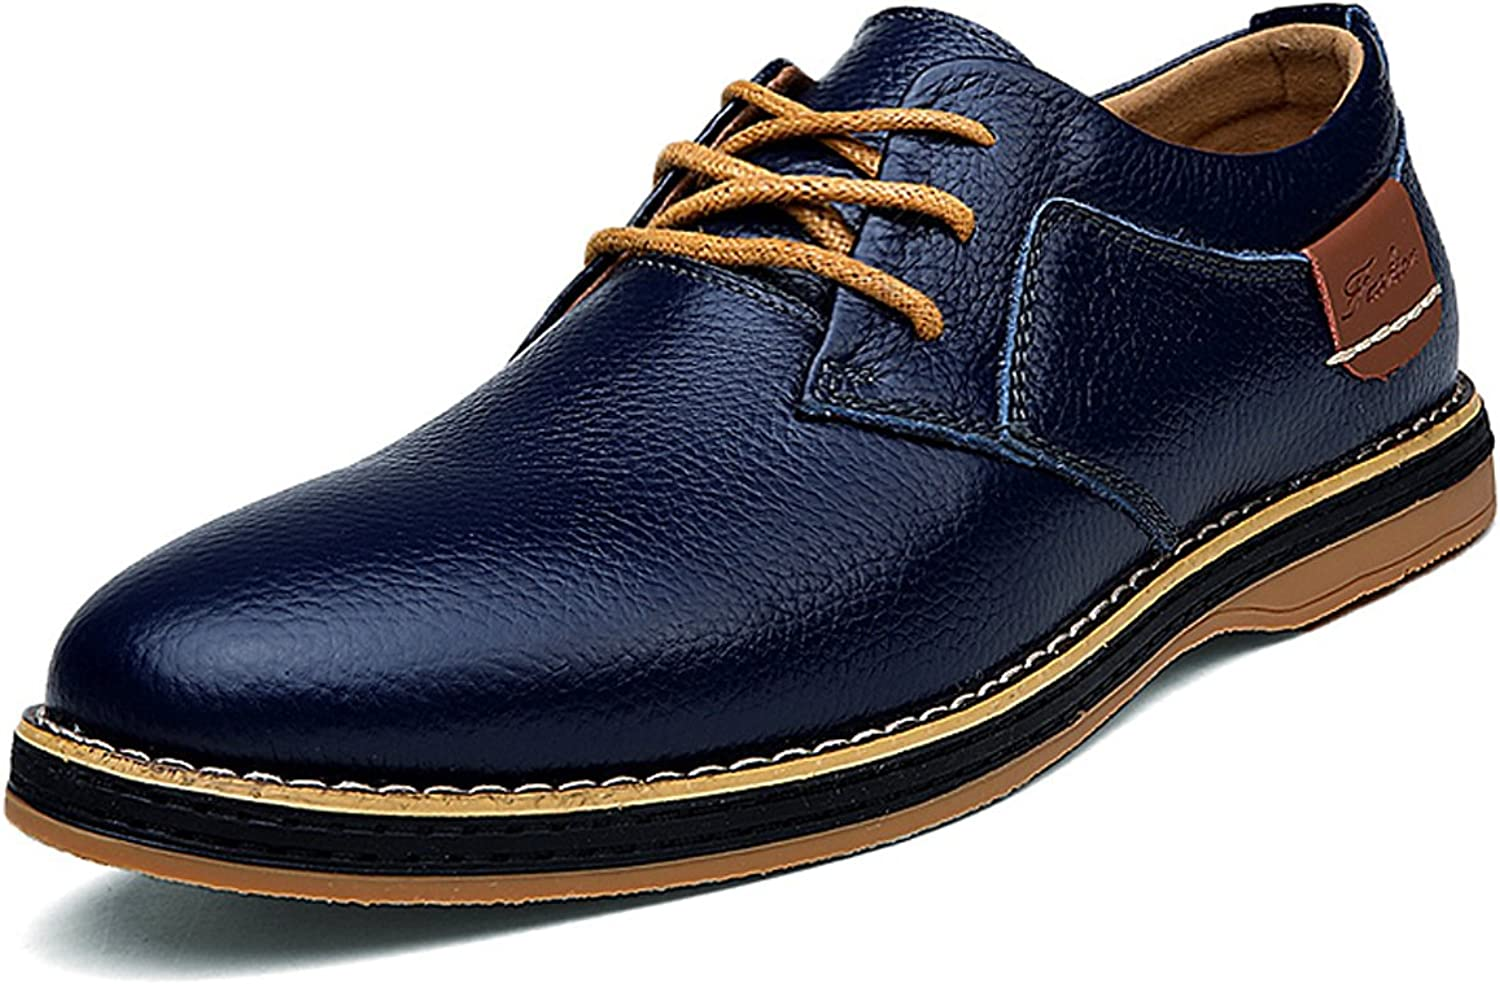 TSIODFO Casual Oxford shoes Men Formal shoes for Men Cow Leather Oxfords Navy bluee Men Business shoes Size 7.5 (6111Navybluee40)